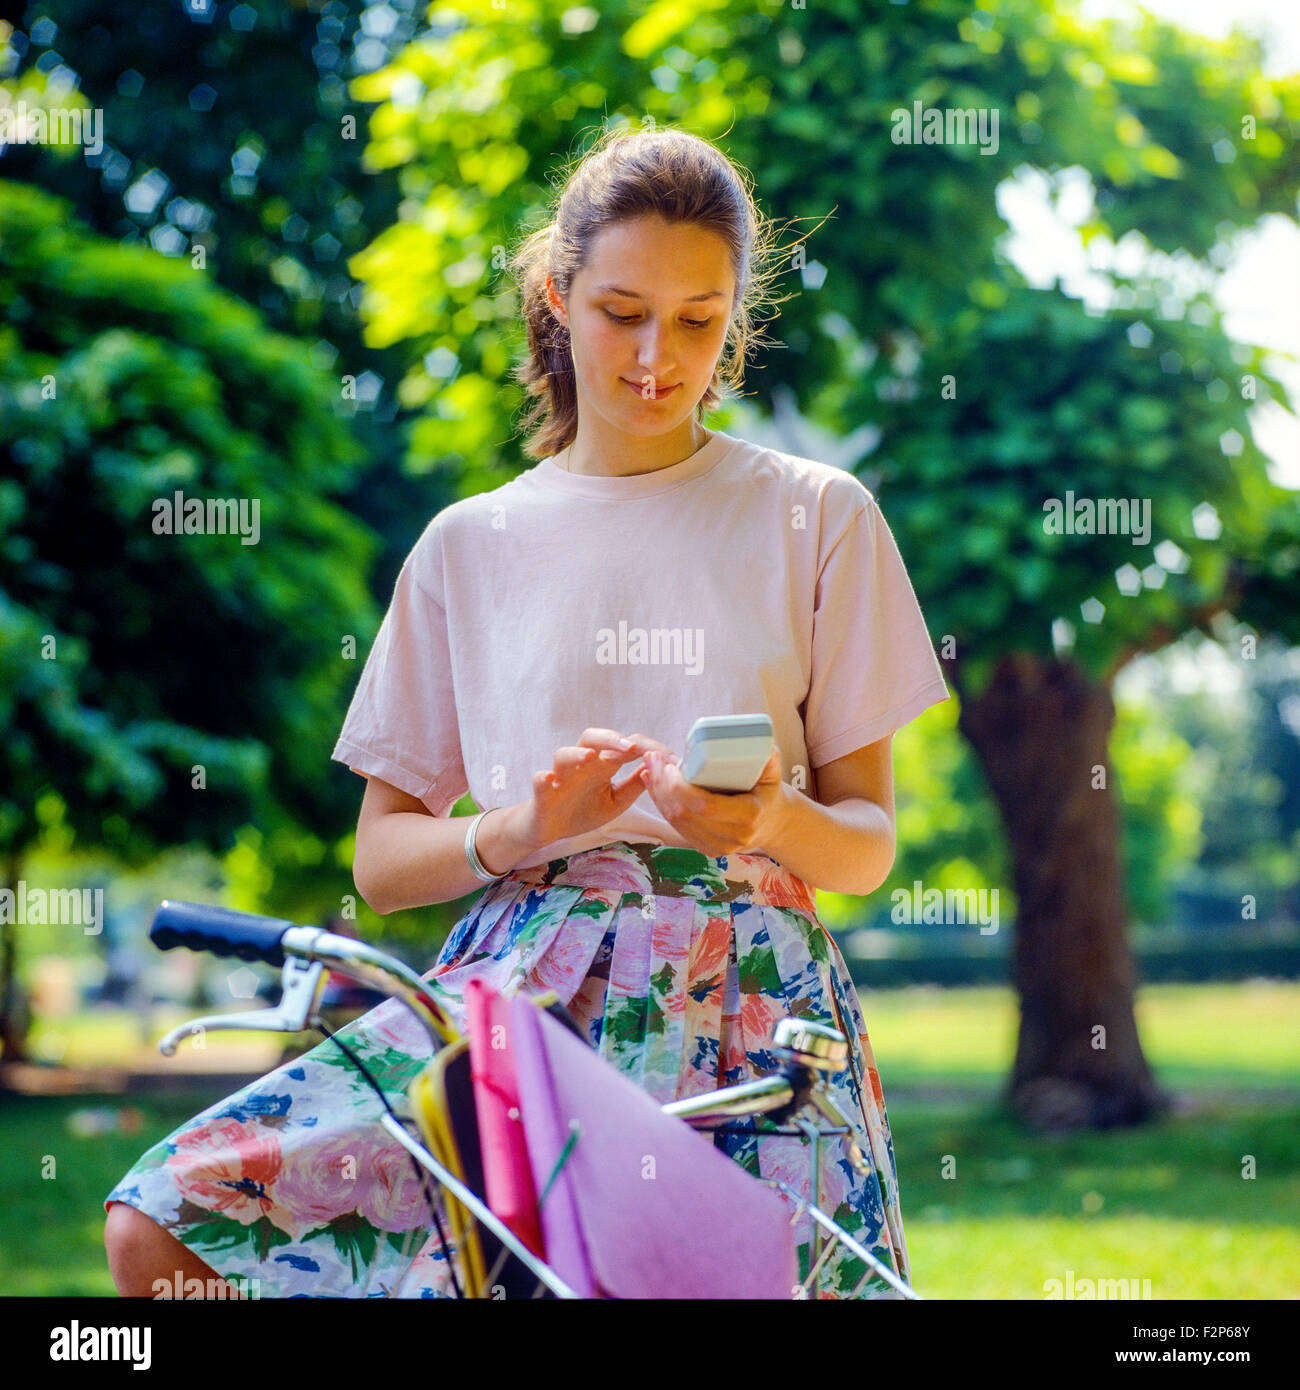 Teenage girl on her bike text messaging on her cellular telephone in park, - Stock Image